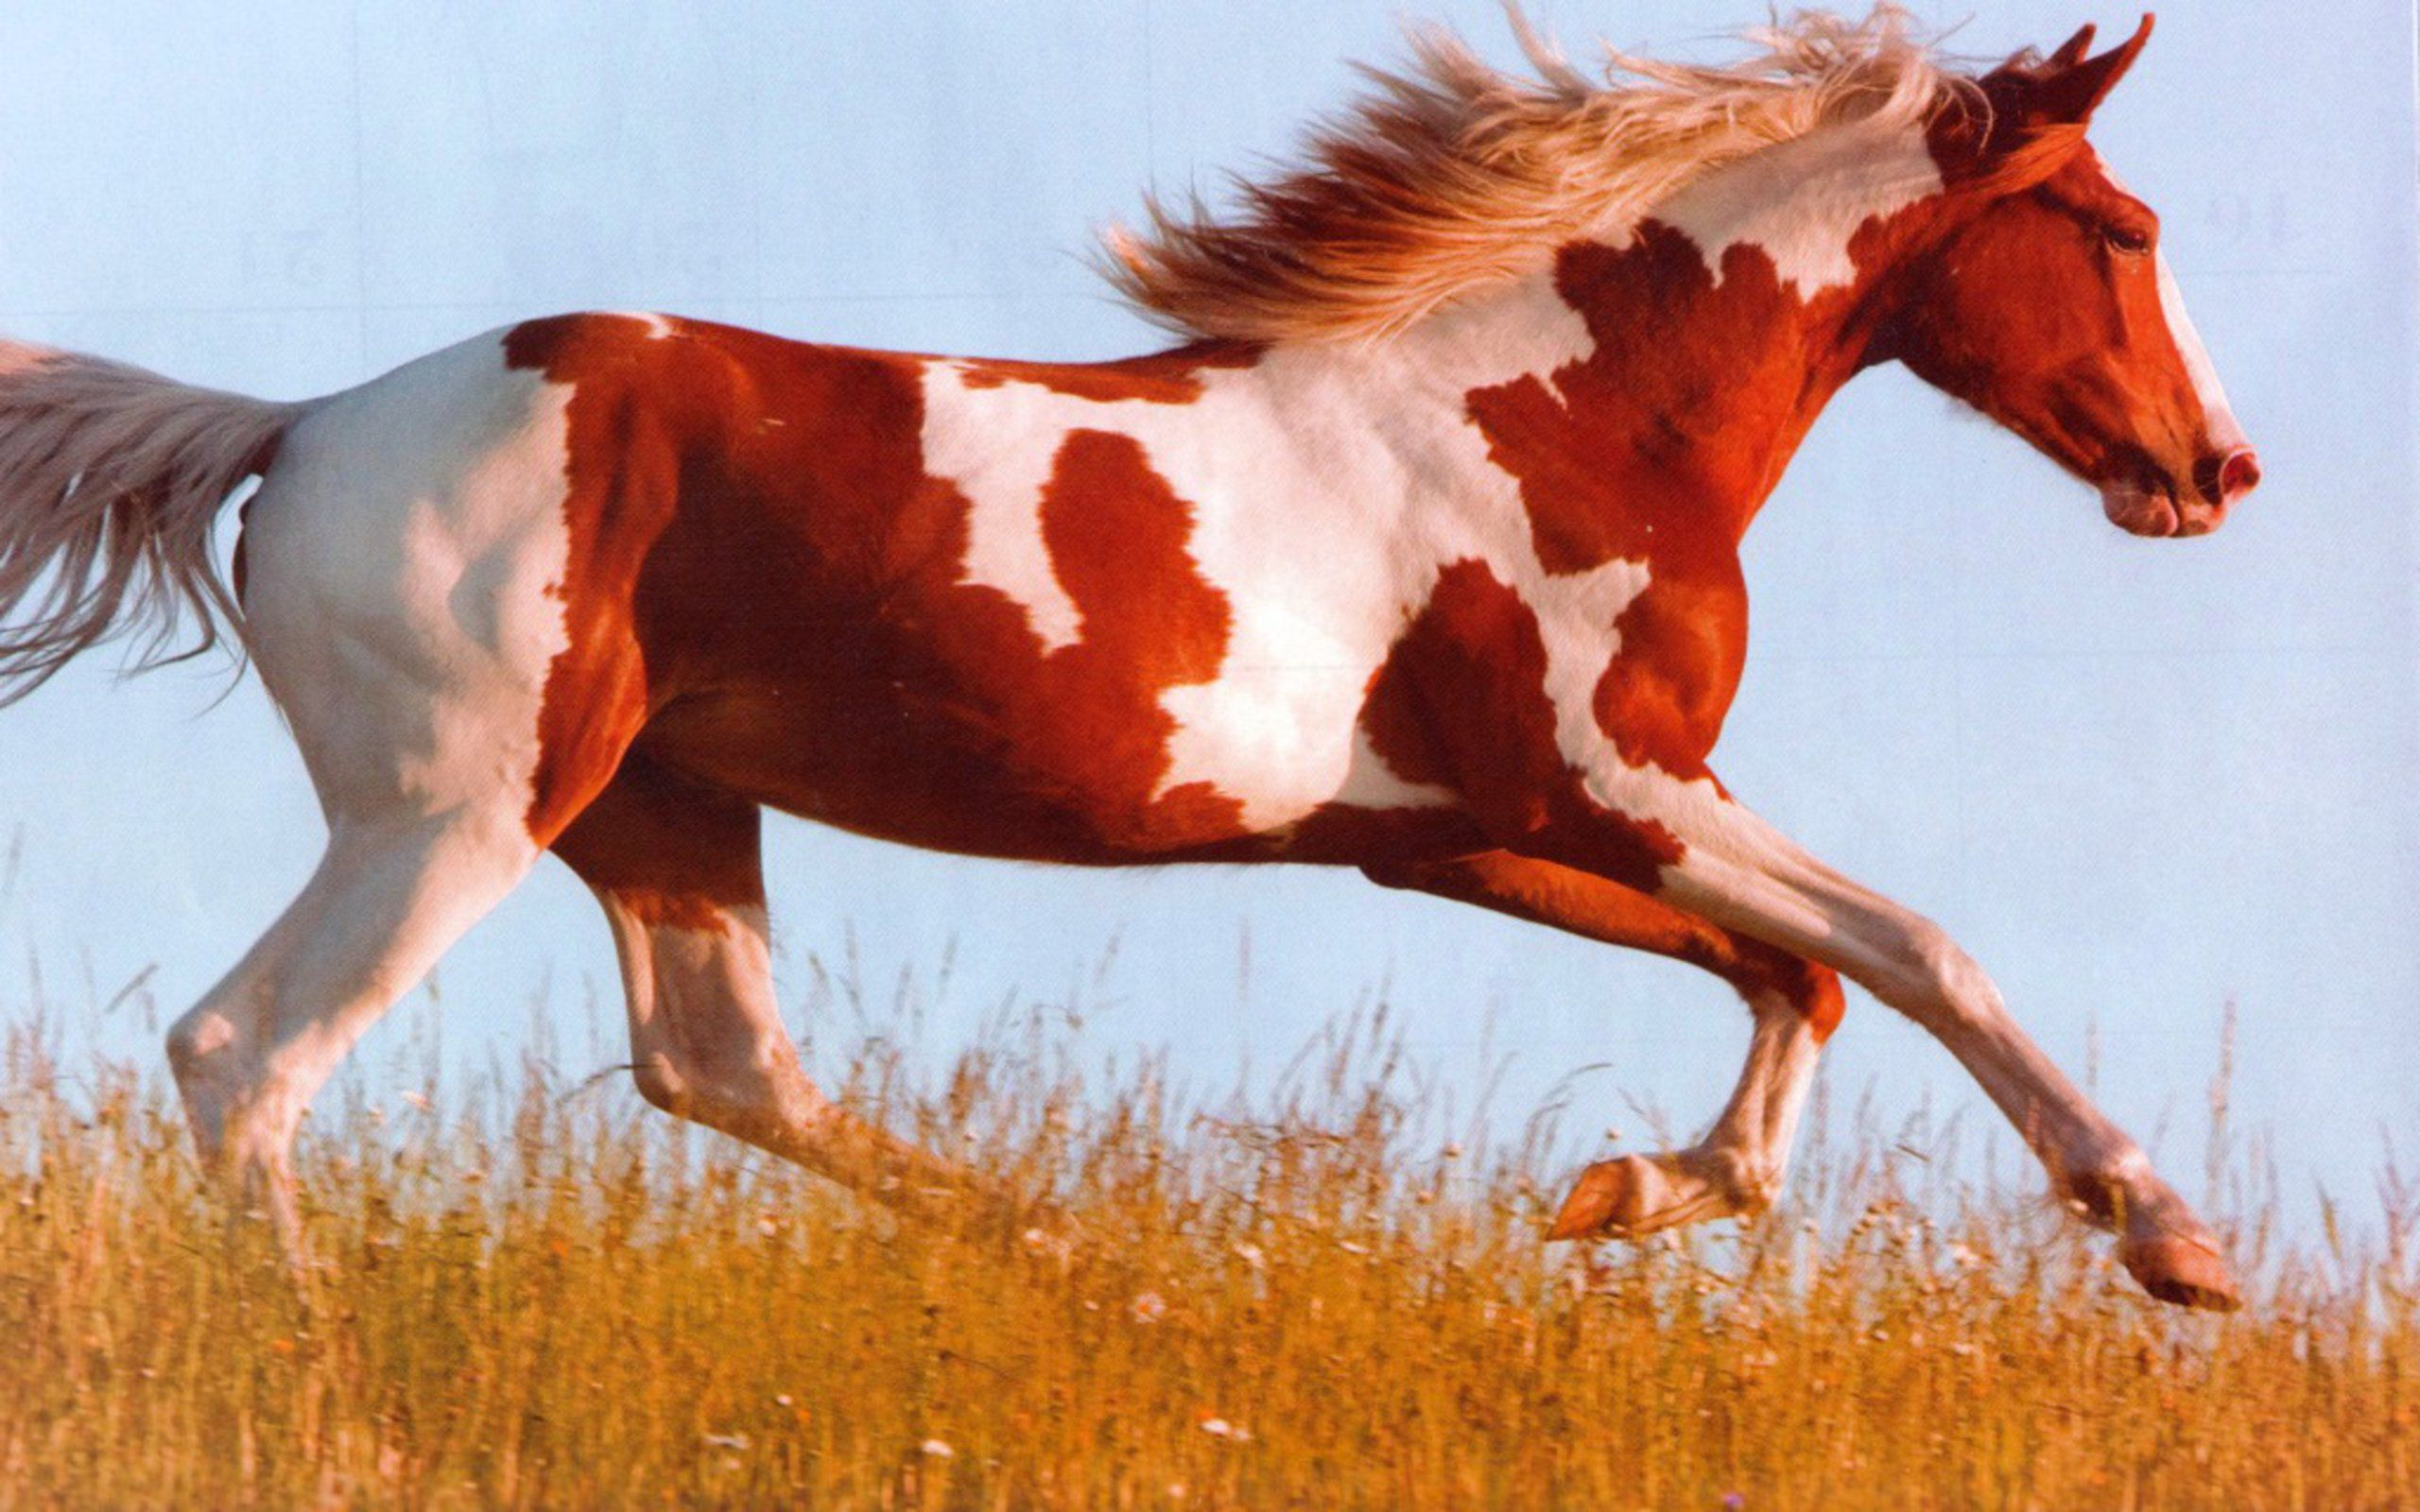 I love horses like these, I find they look a little rebel.